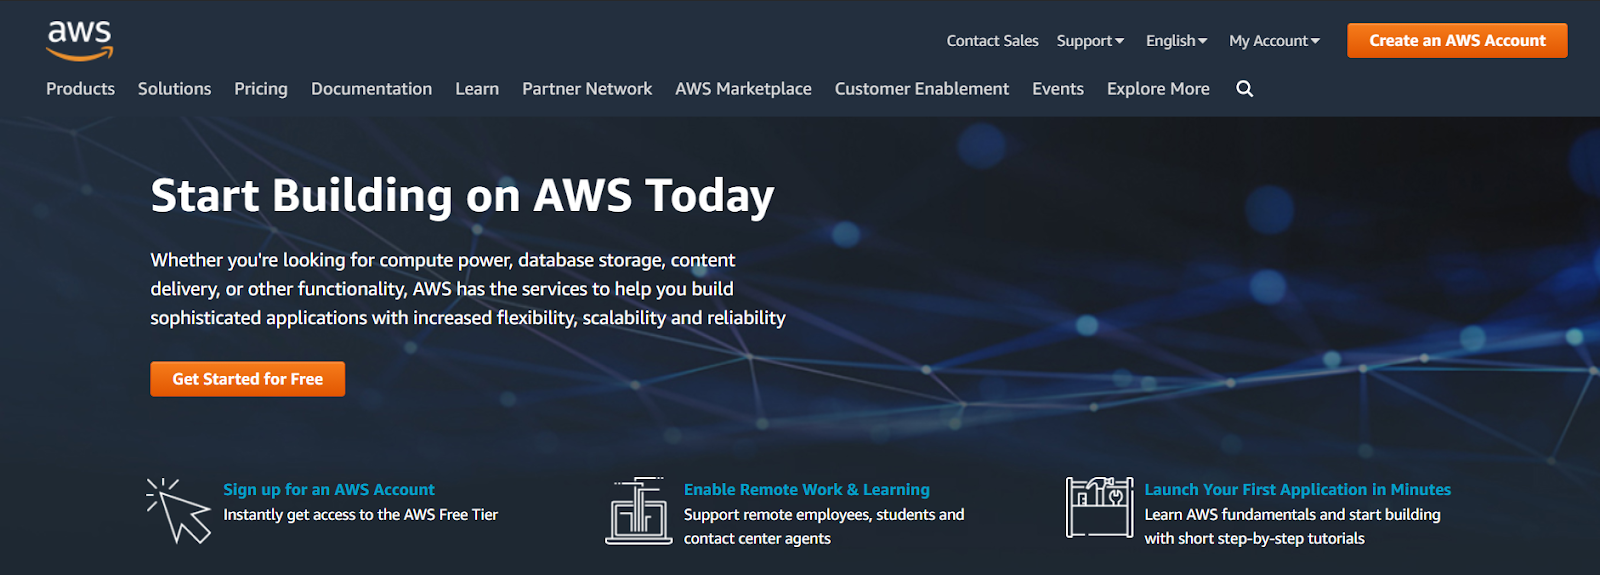 AWS is an Application As A Service